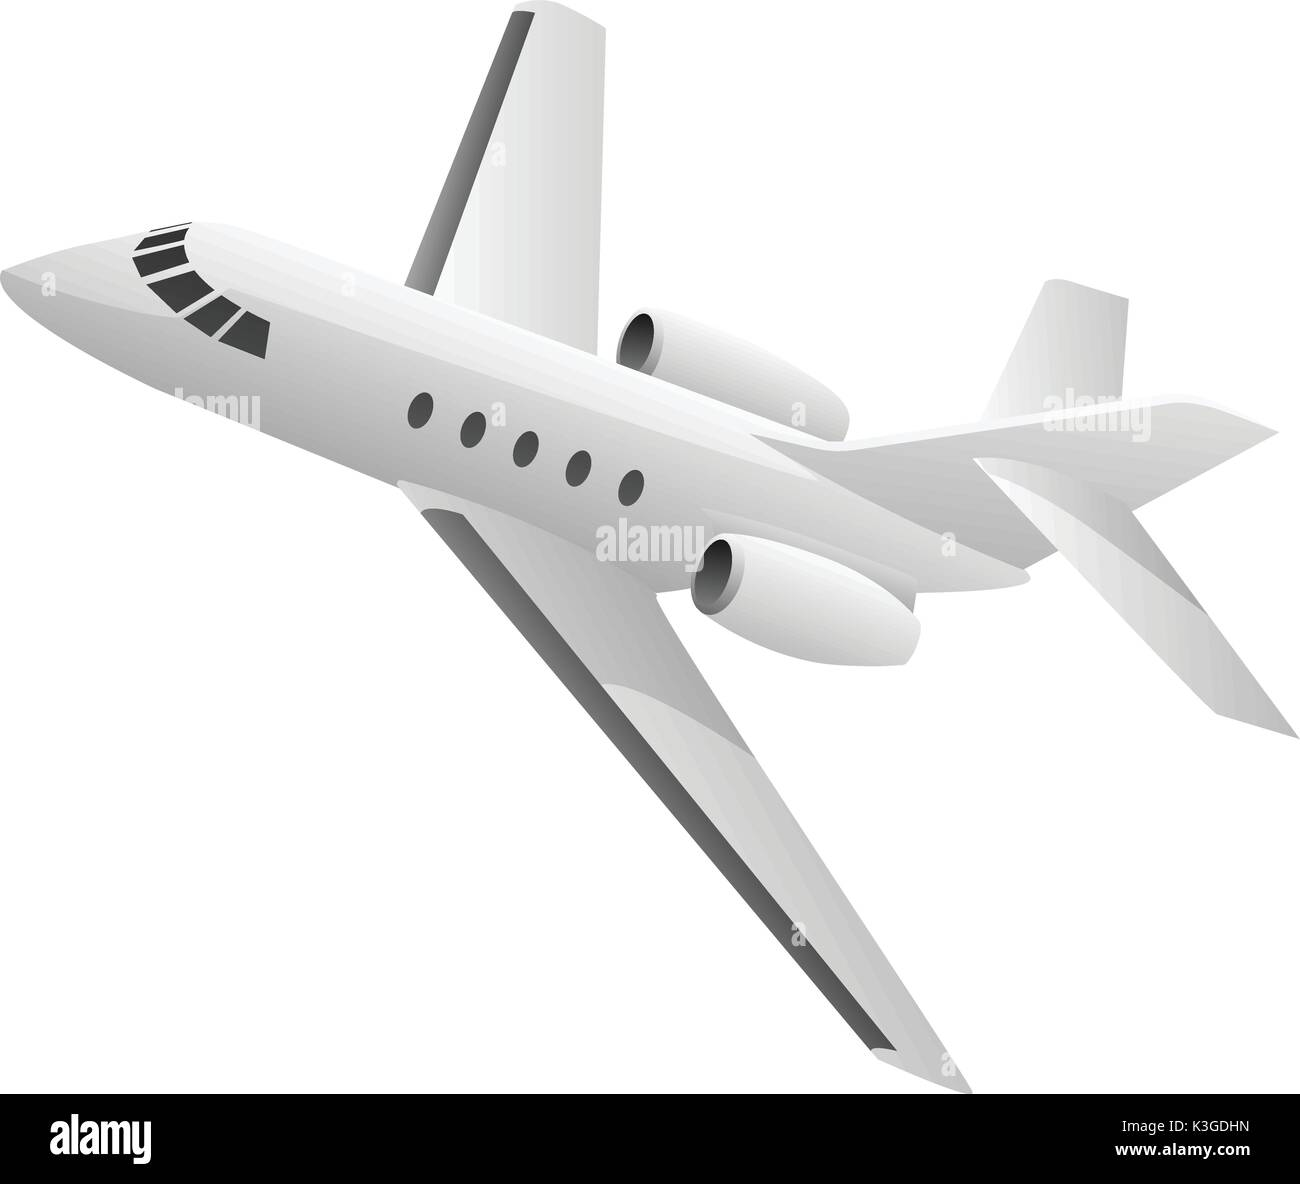 Business Jet Airplane Illustration - Stock Image